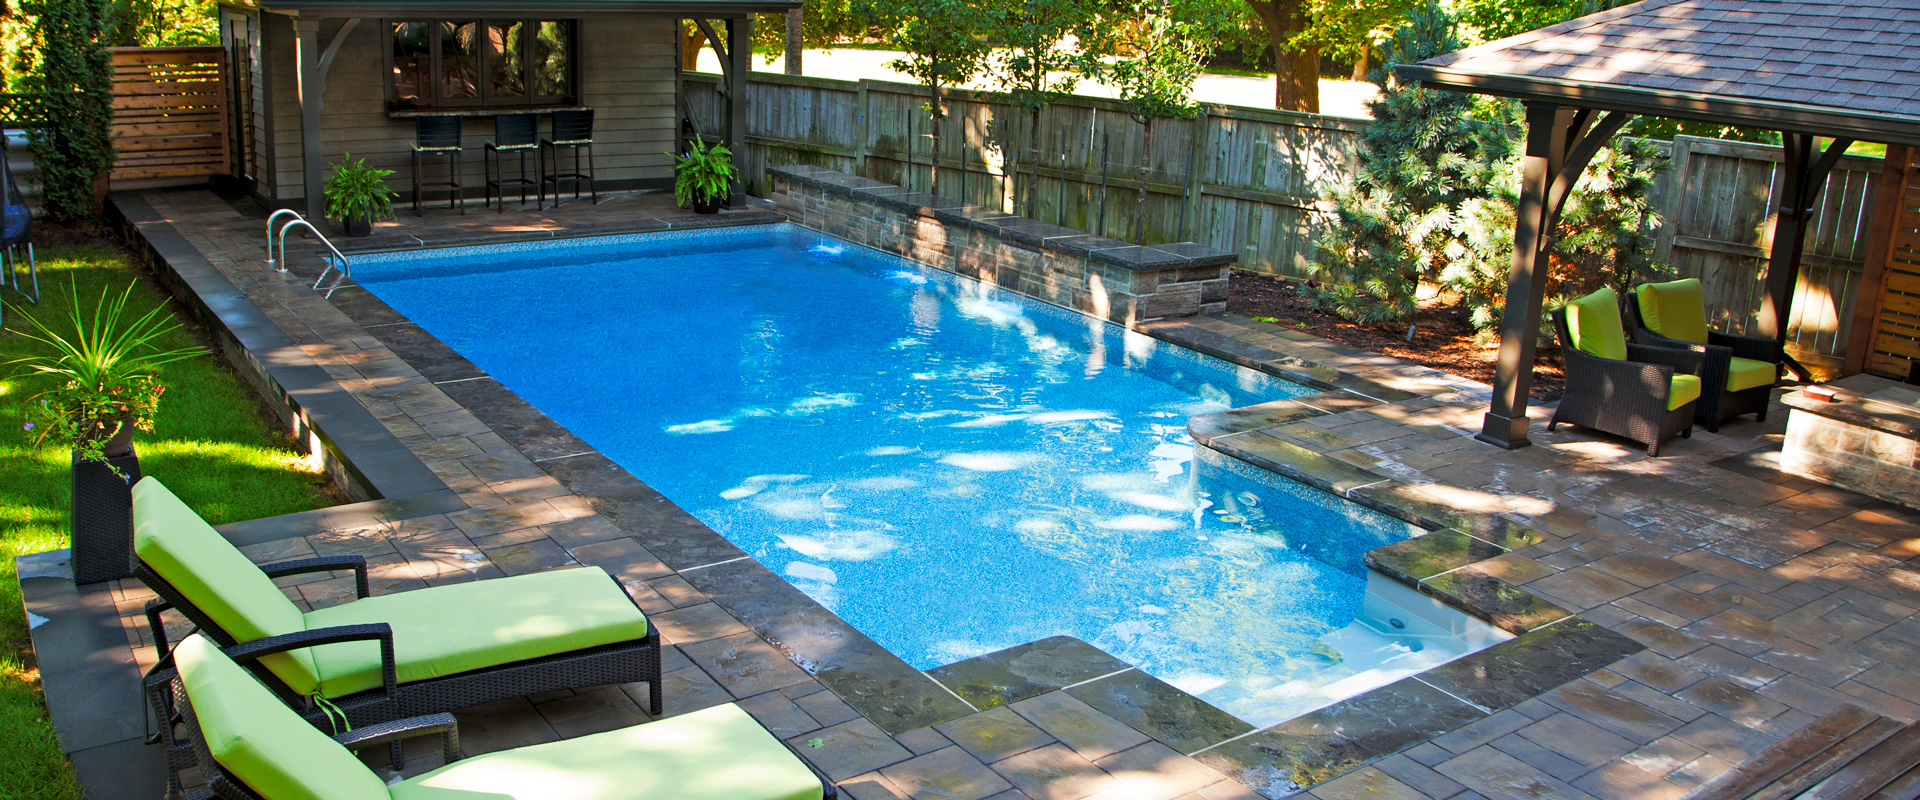 The tsiapalis inground pool showcase pioneer family pools for Pool showcase